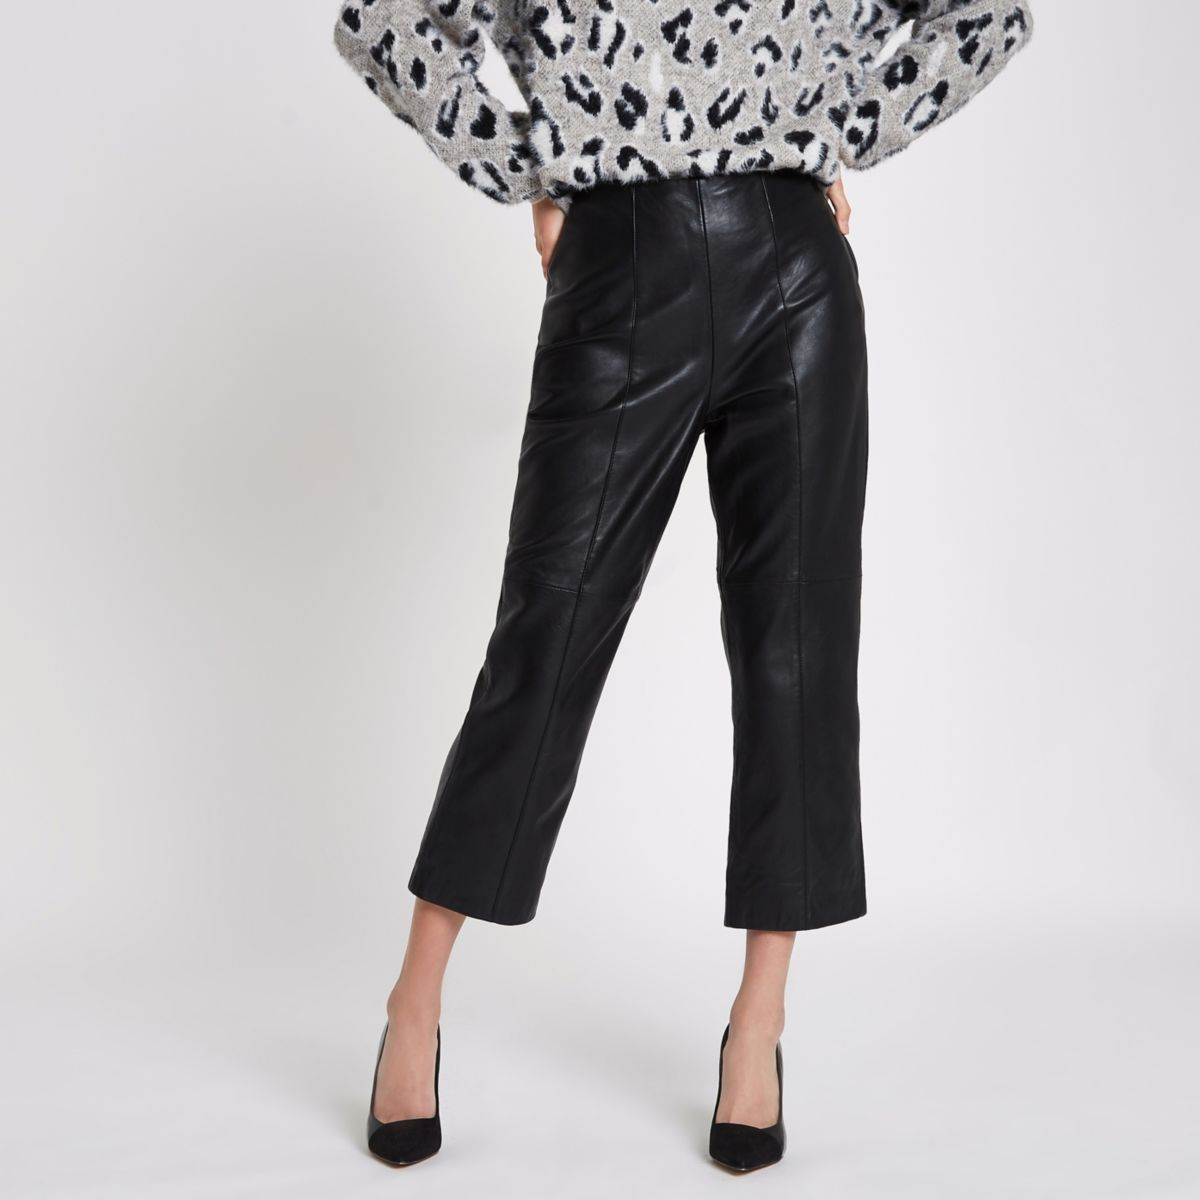 Black leather flared cropped trousers